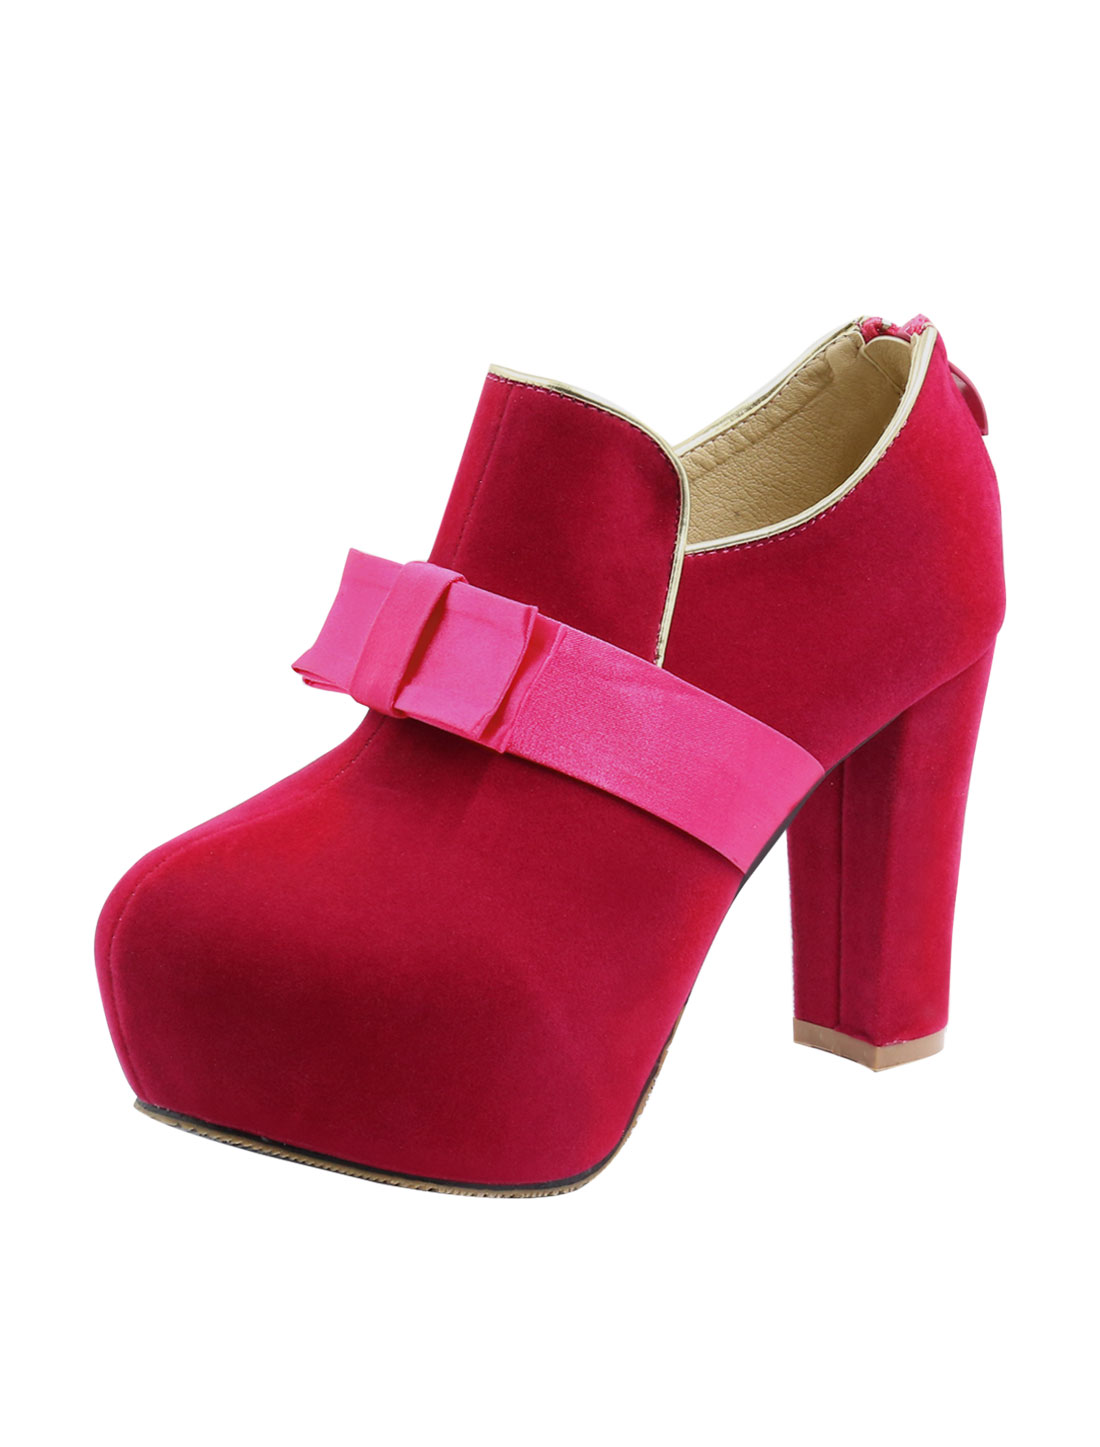 Women Bow-Topped Metallic Trim Platform Chunky Heel Pumps Red US 8.5